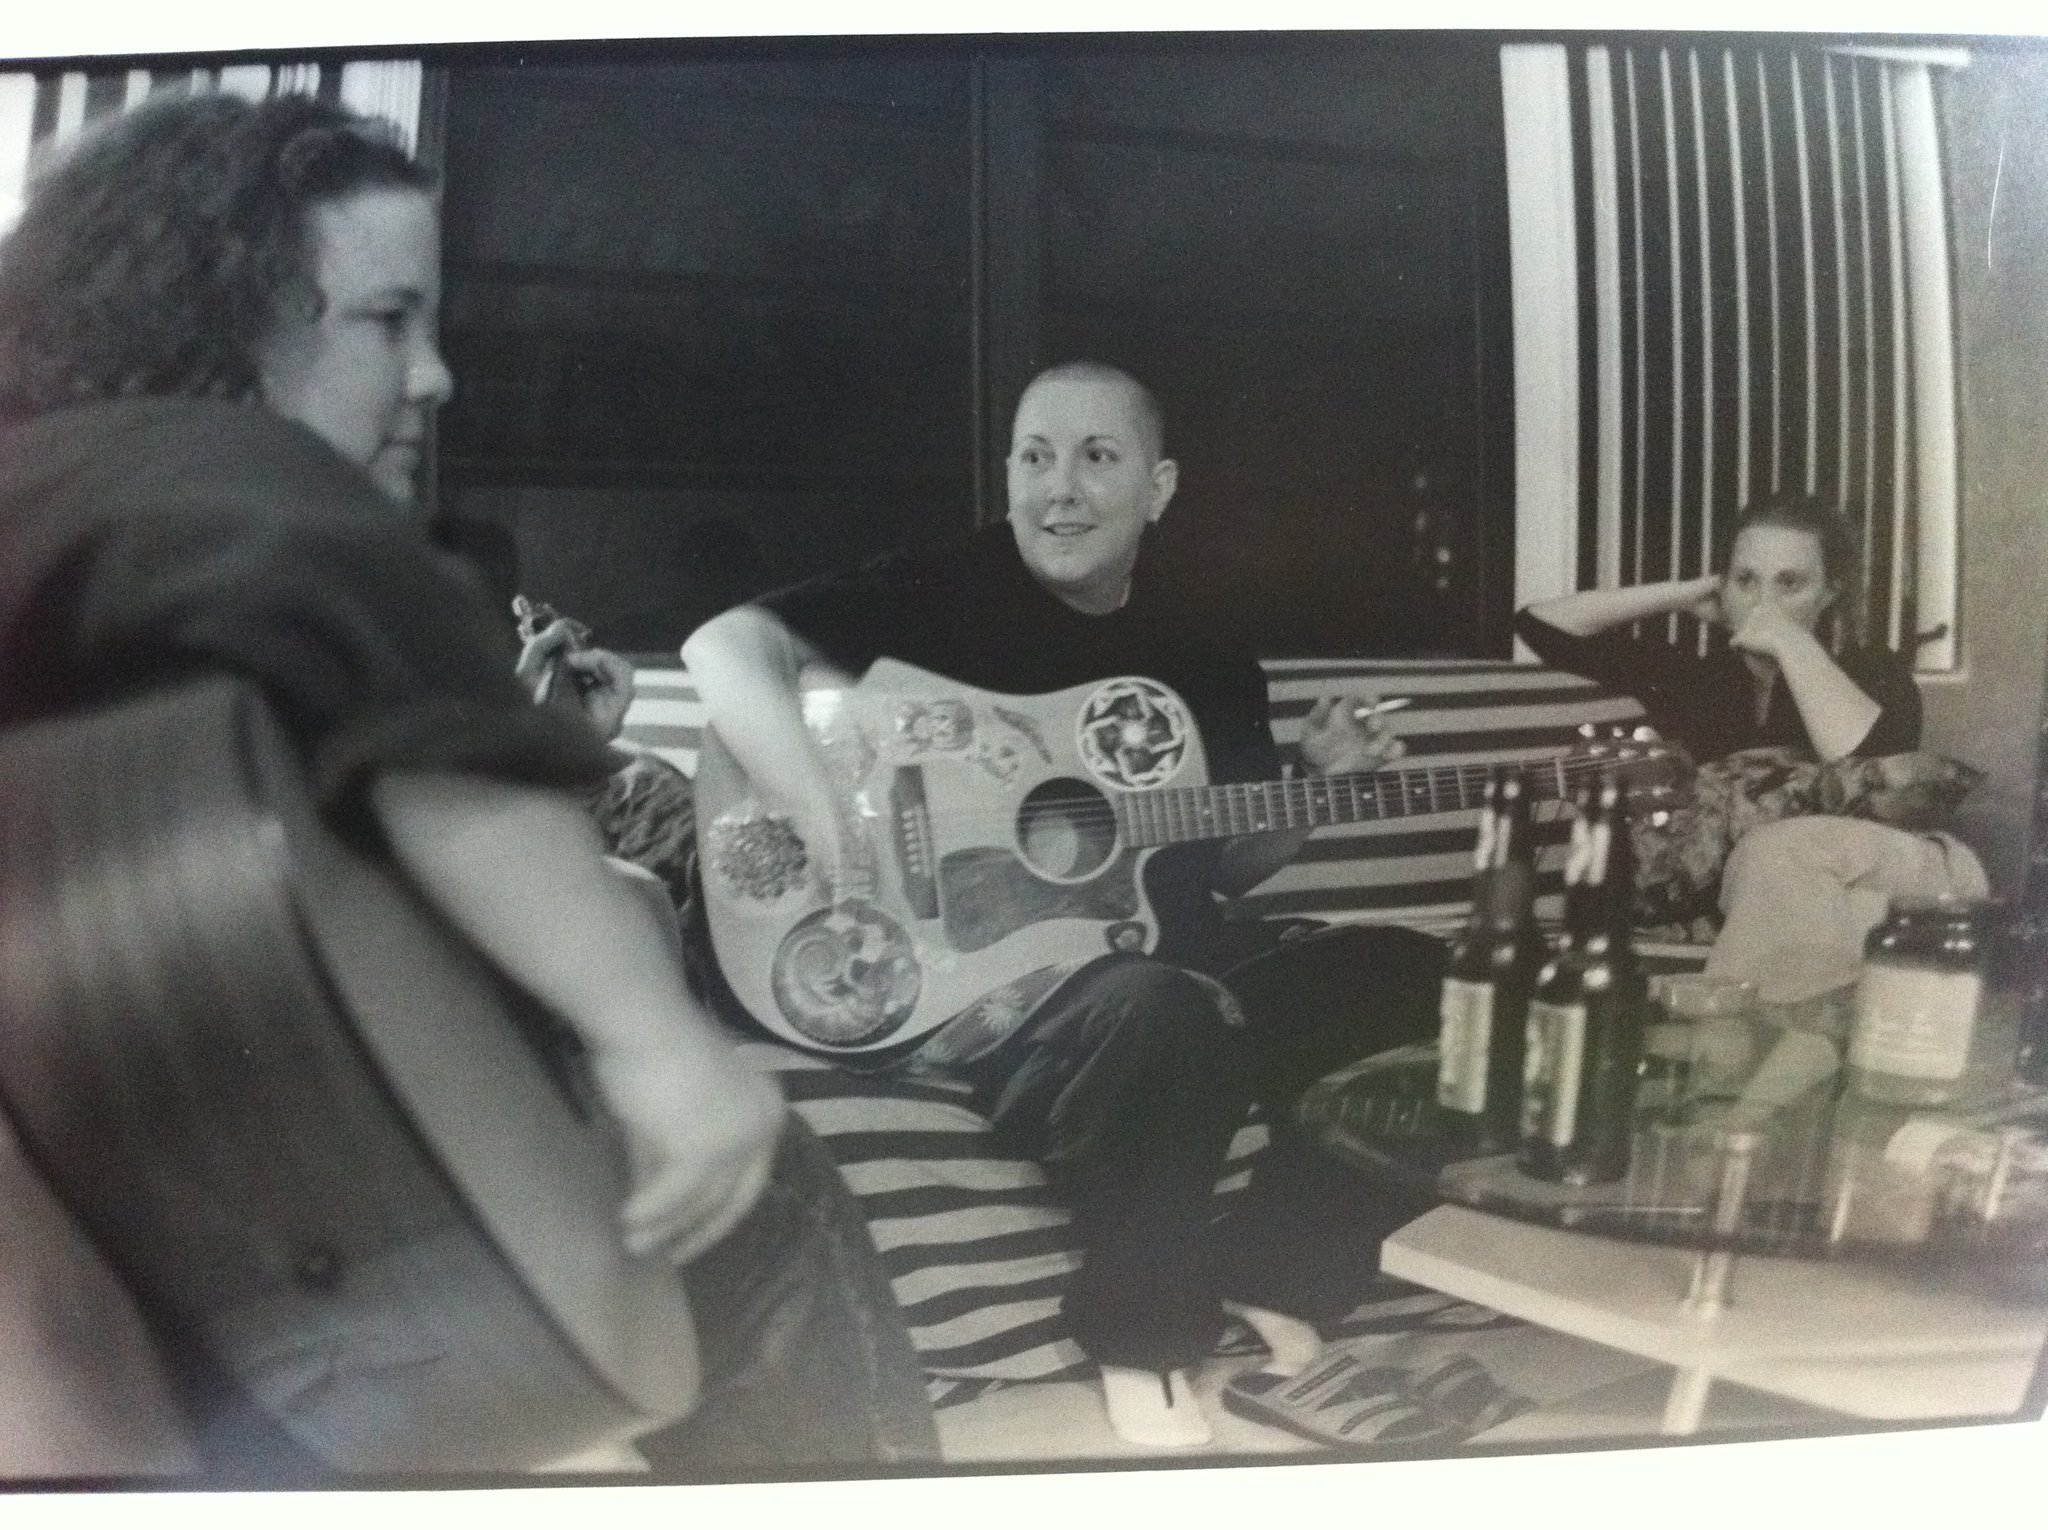 beverly mcclellan writing music and playing guitar in florida 2003. black and white image.